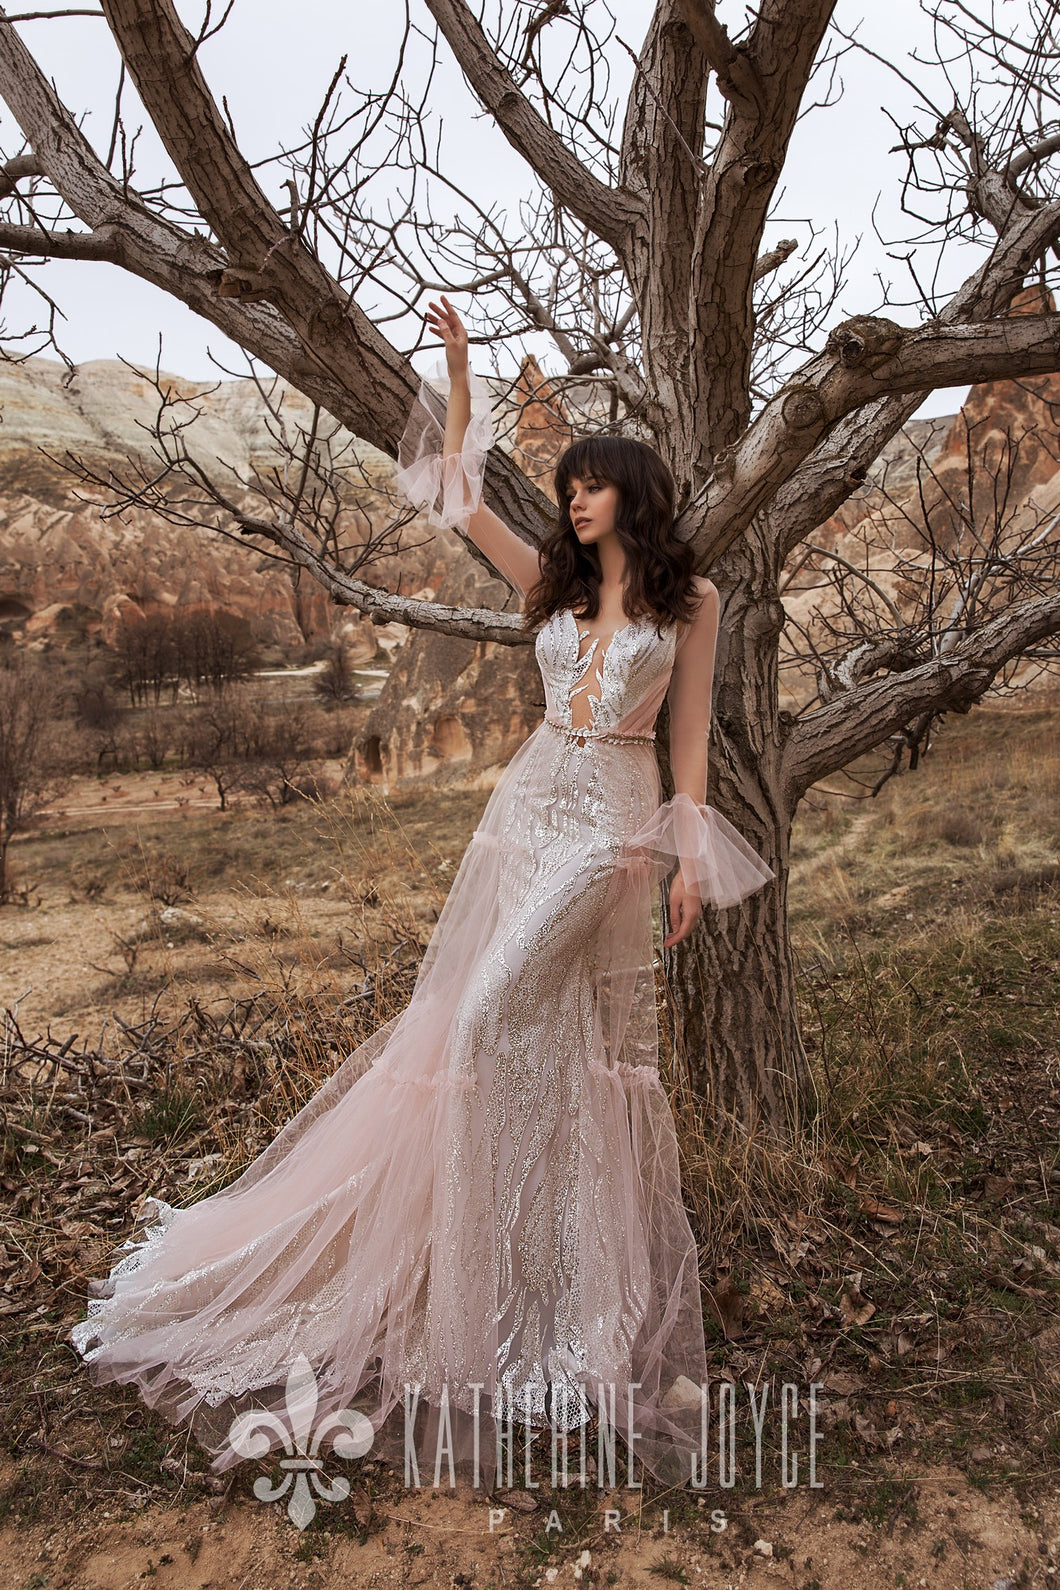 Wind Desert 'Altar' Katherine Joyce Paris RTW T 01-368 Ready To Wear European Bridal Wedding Gown Designer Philippines